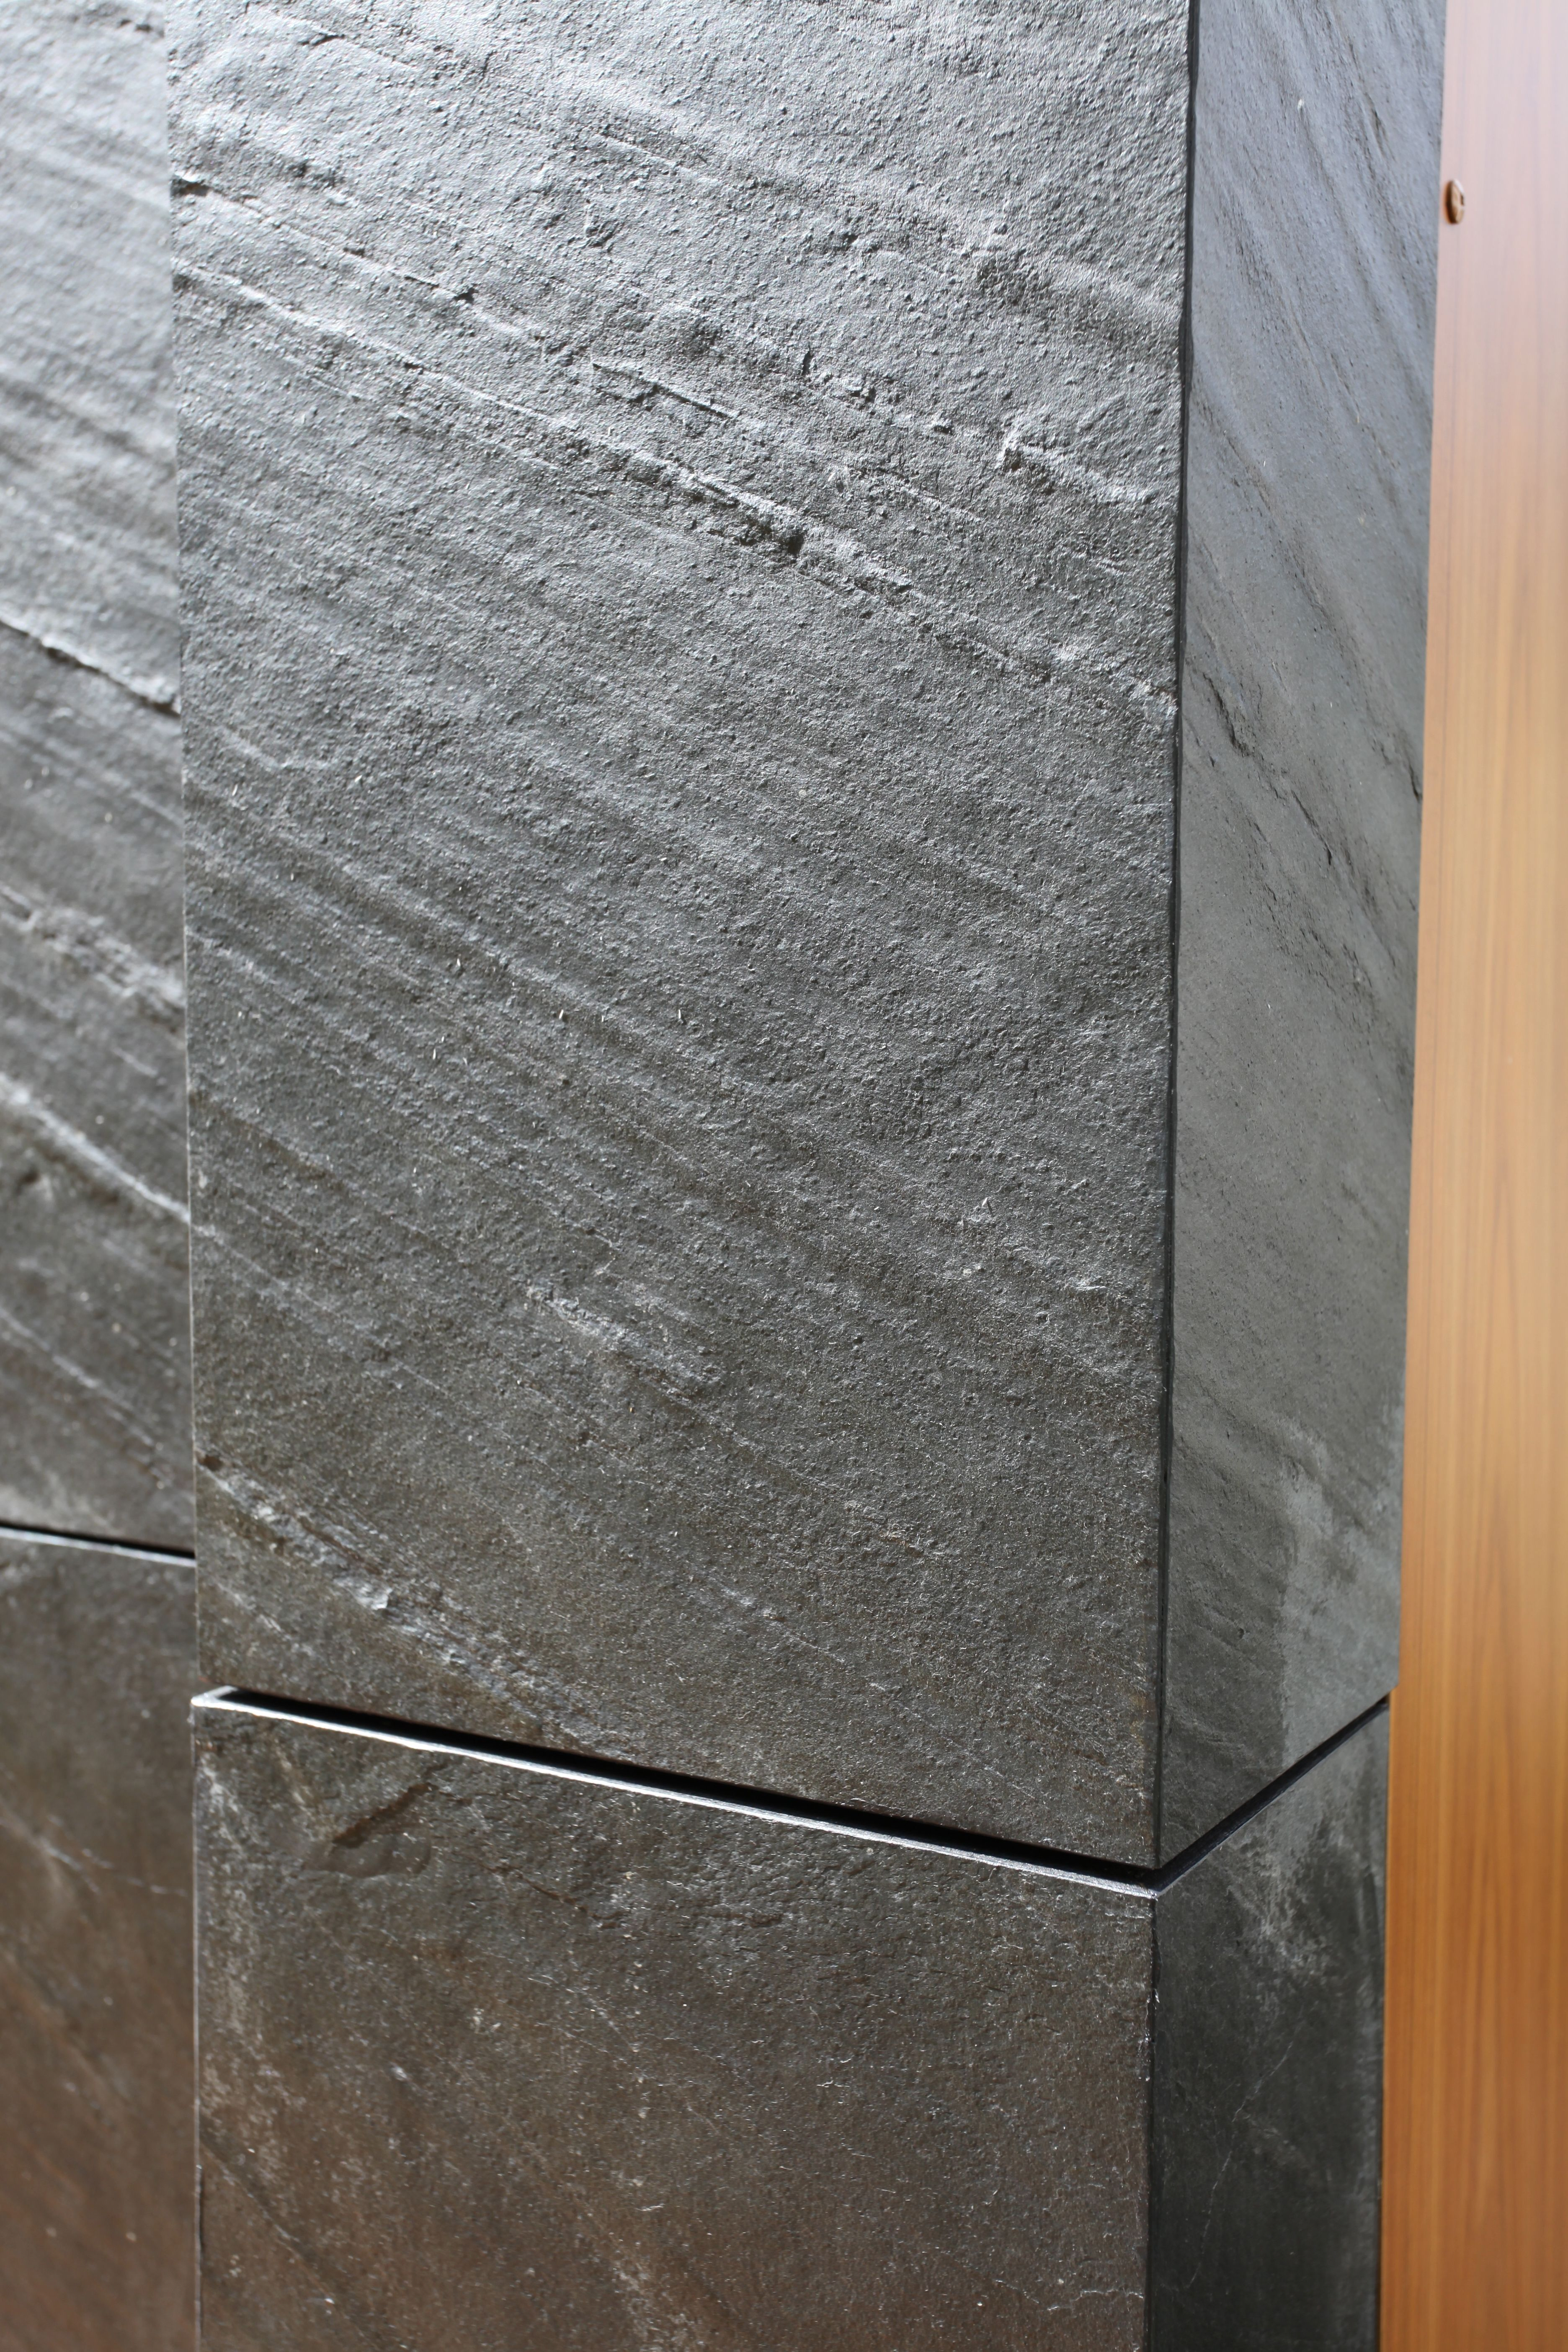 suppliers exporter exports walls articraft interior natural moon panels stone tiles cladding details manufacturer wall